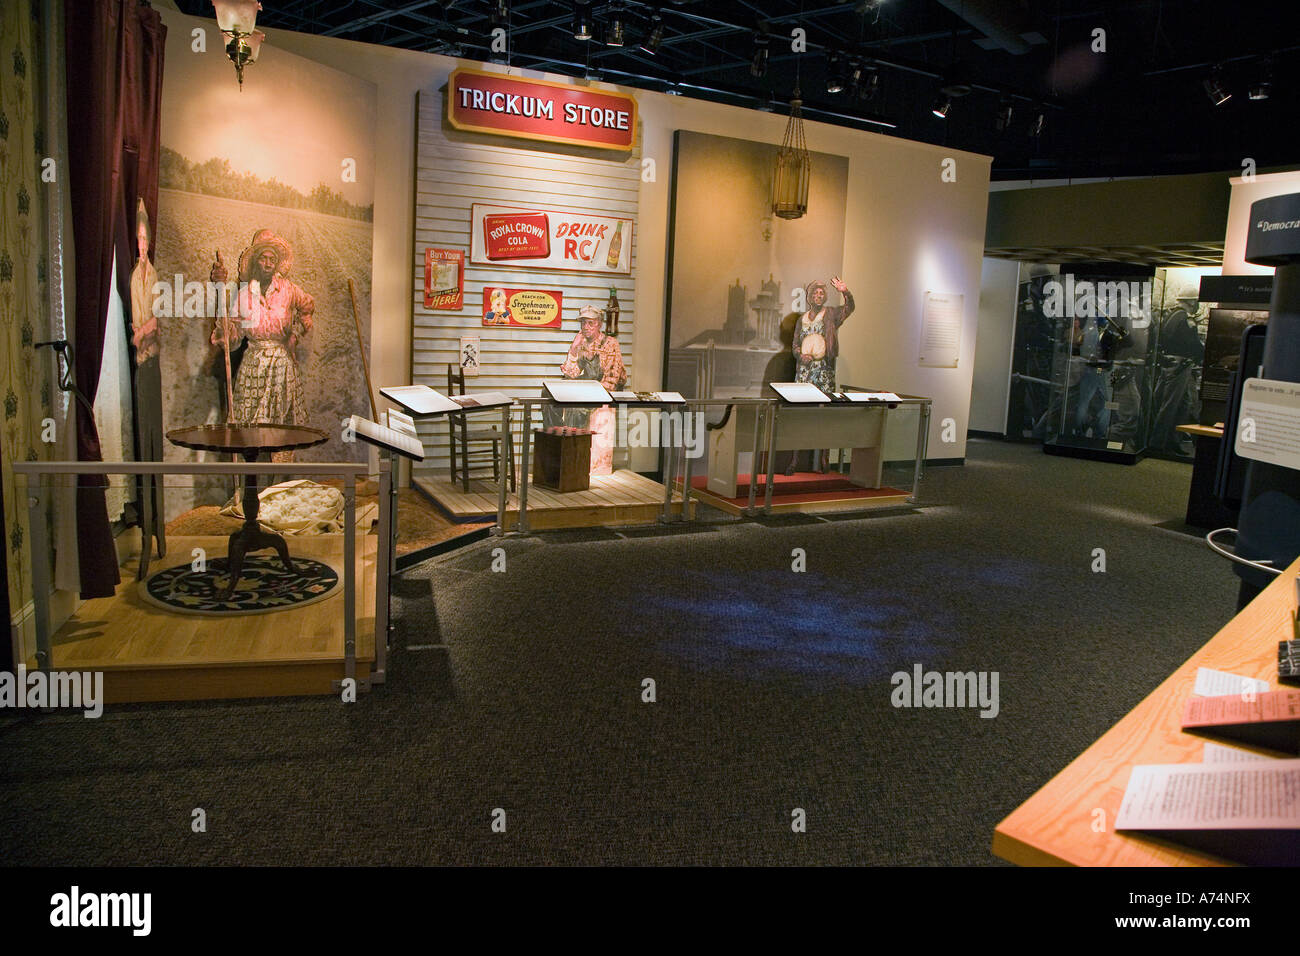 Voting Rights Trail Interpretive Center - Stock Image